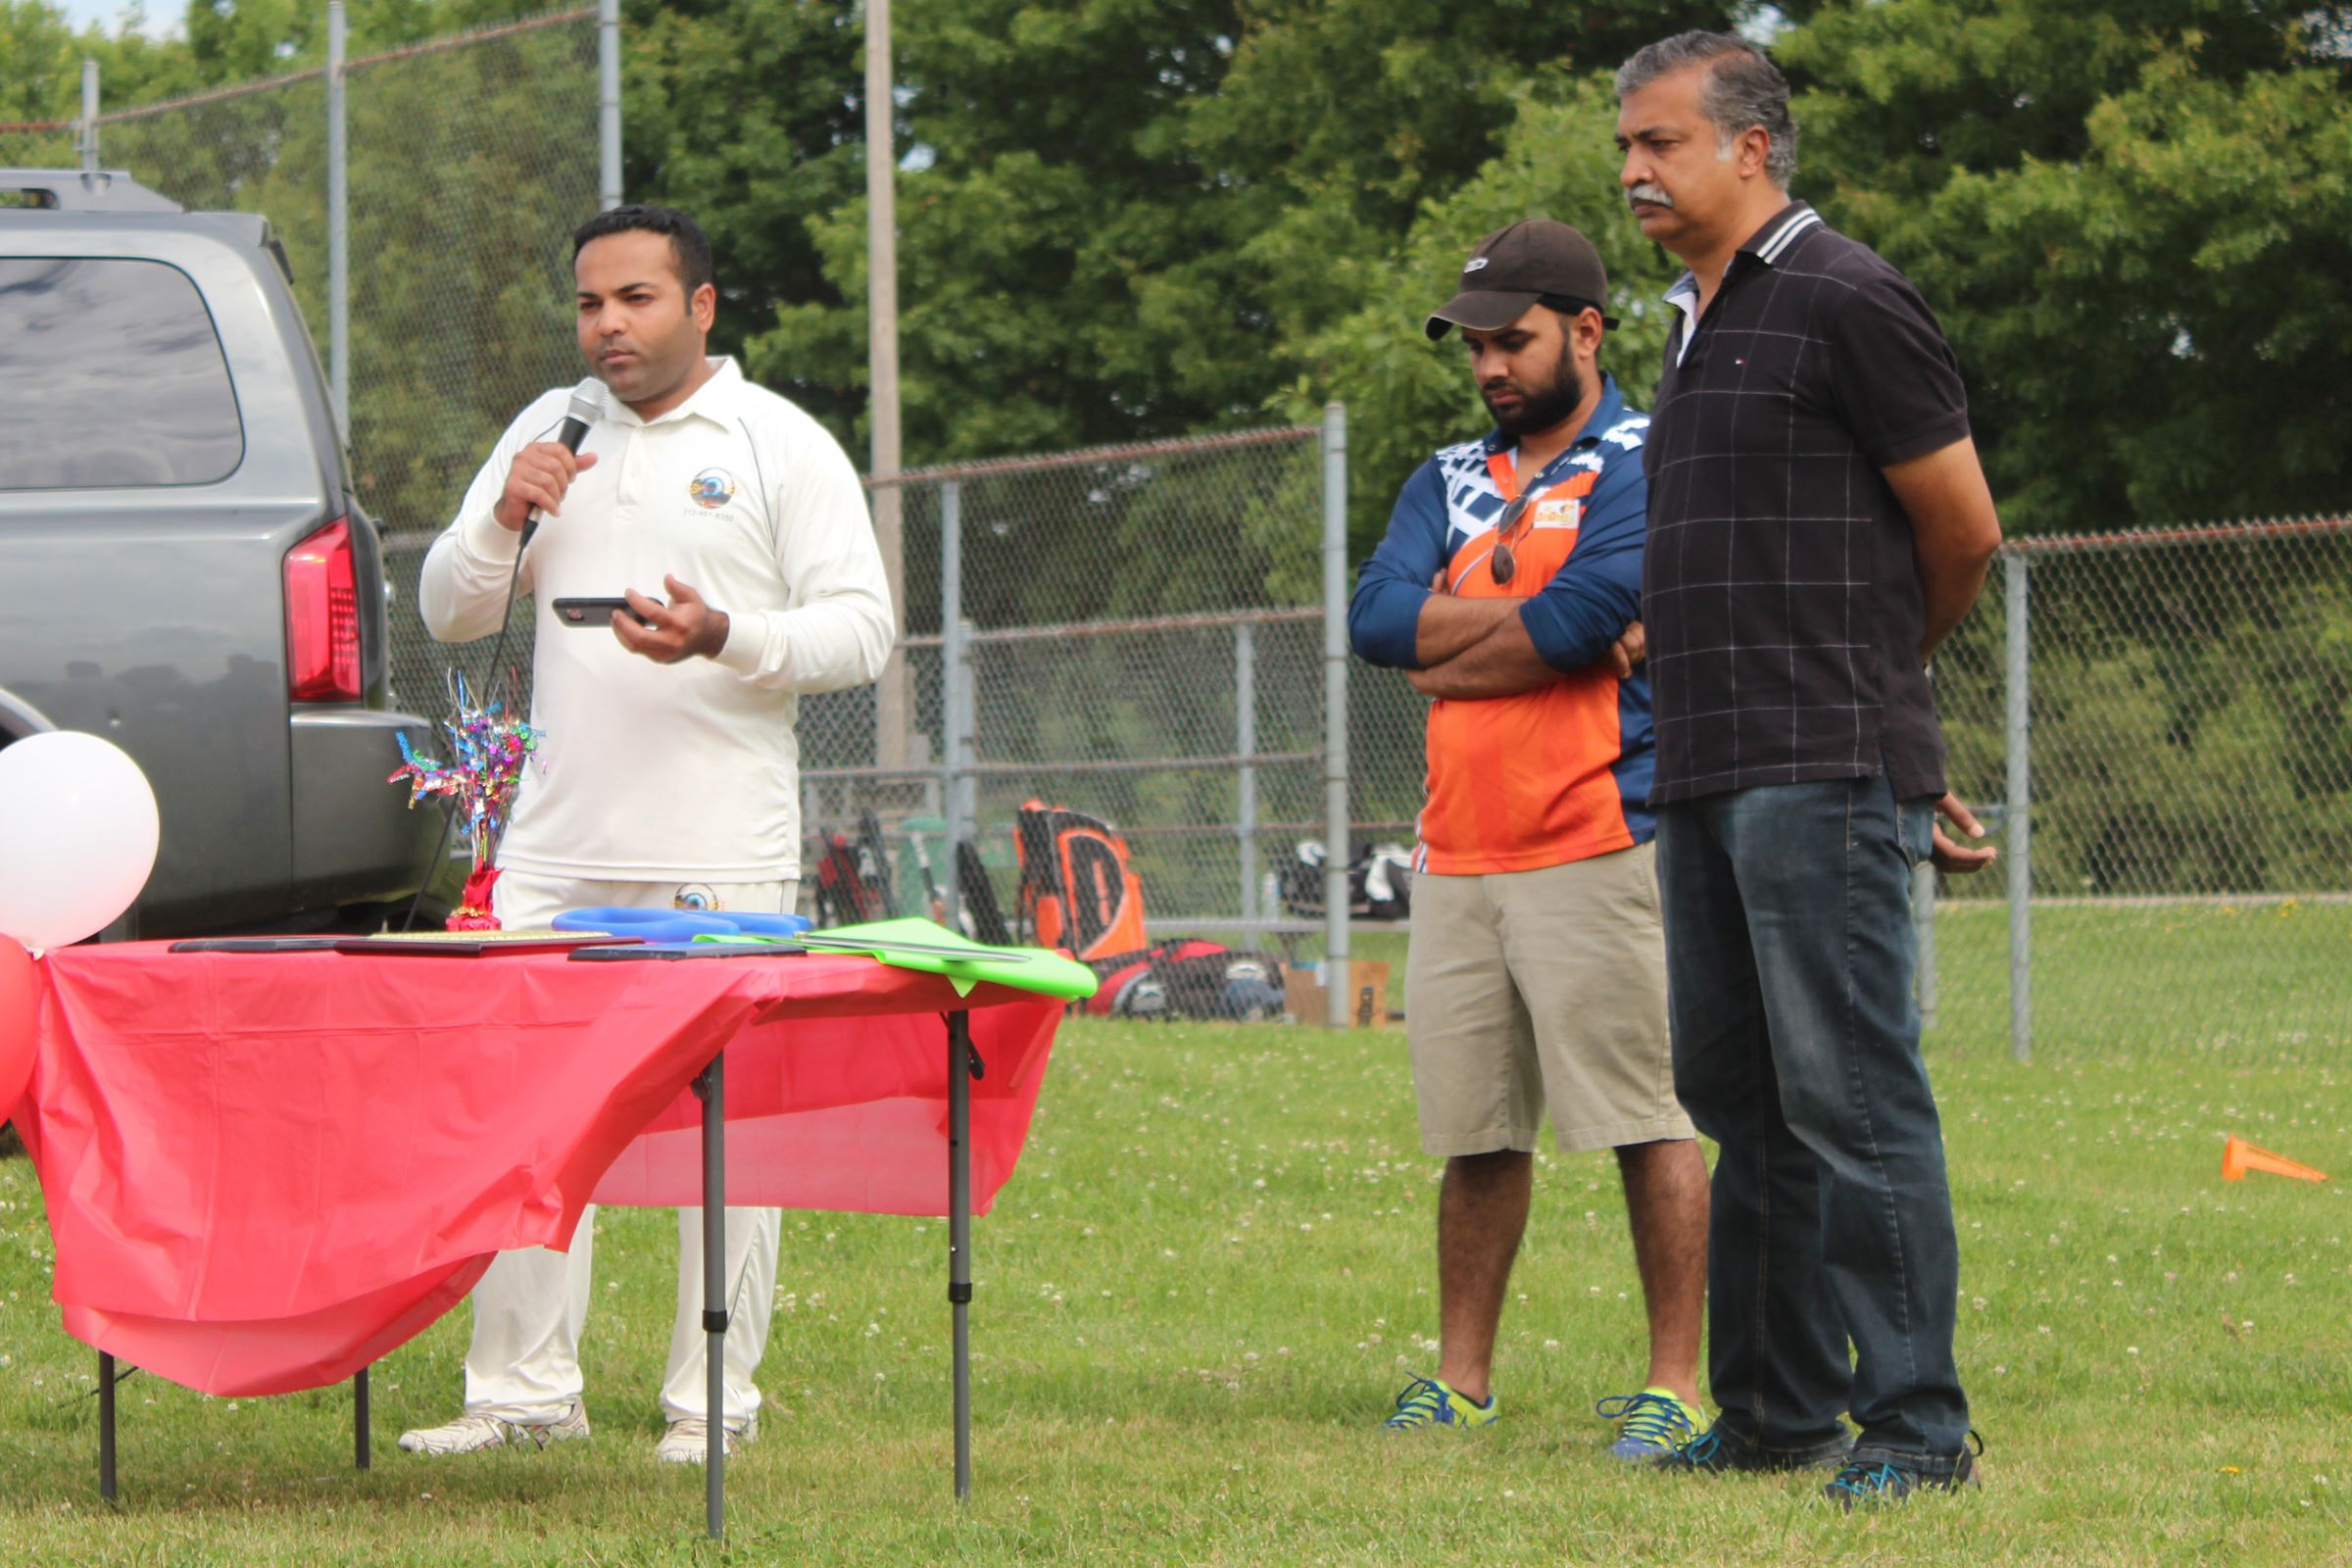 Midwest Cricket League remarks